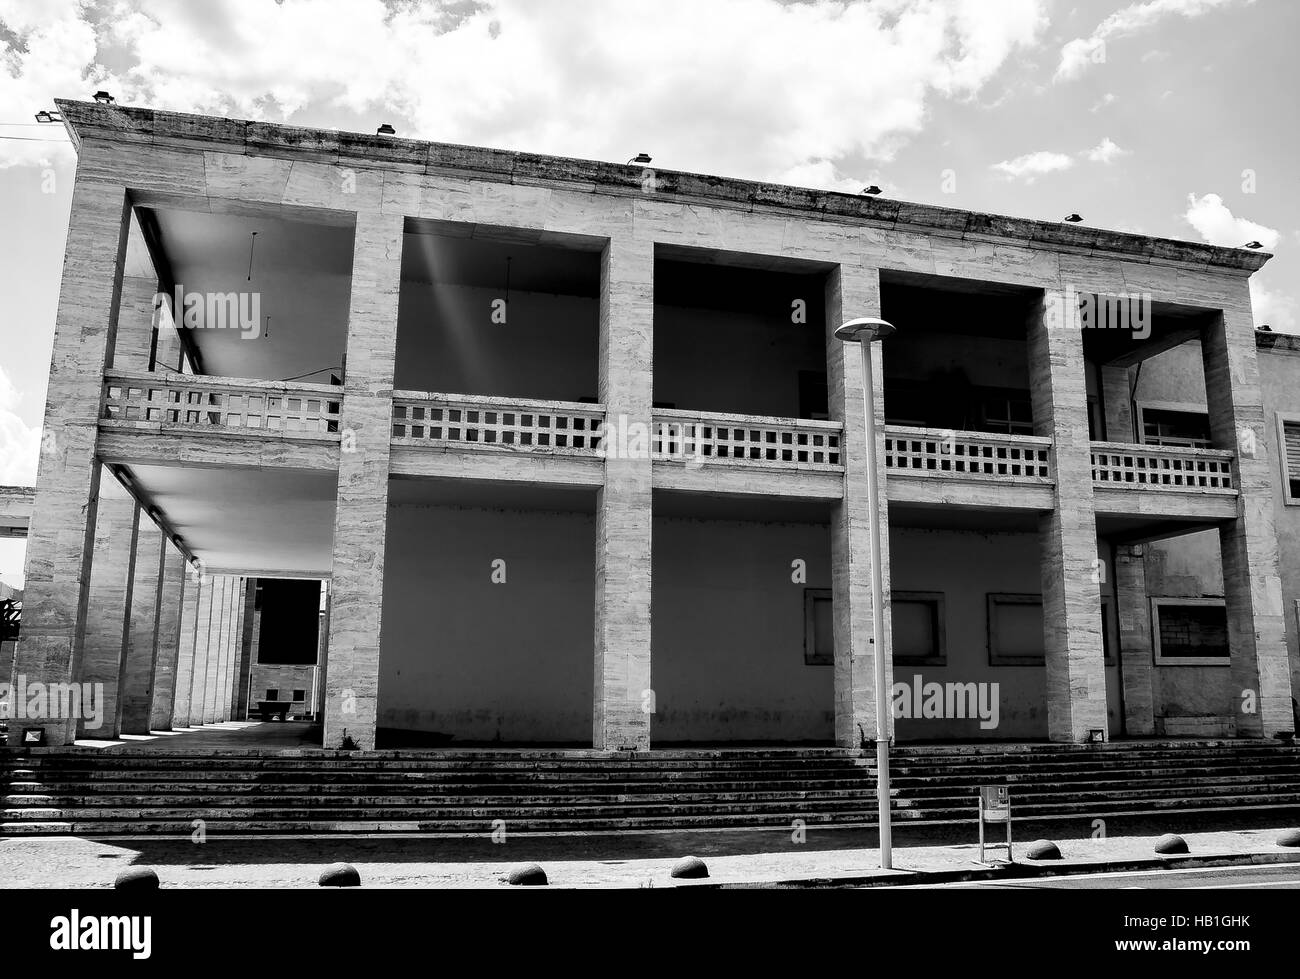 Italian architecture in Tirana - Stock Image